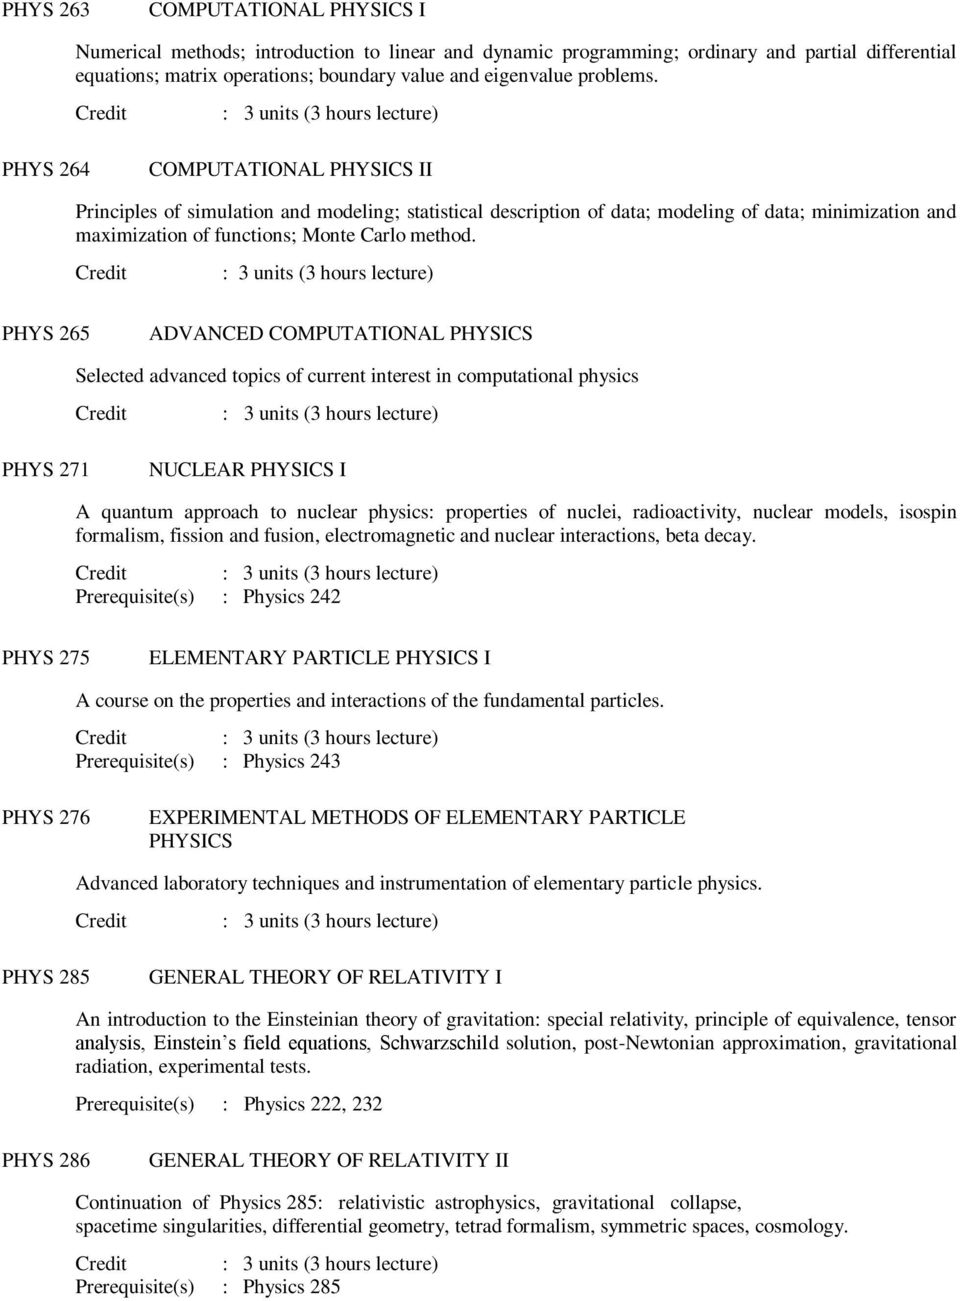 PHYS 265 ADVANCED COMPUTATIONAL PHYSICS Selected advanced topics of current interest in computational physics PHYS 271 NUCLEAR PHYSICS I A quantum approach to nuclear physics: properties of nuclei,